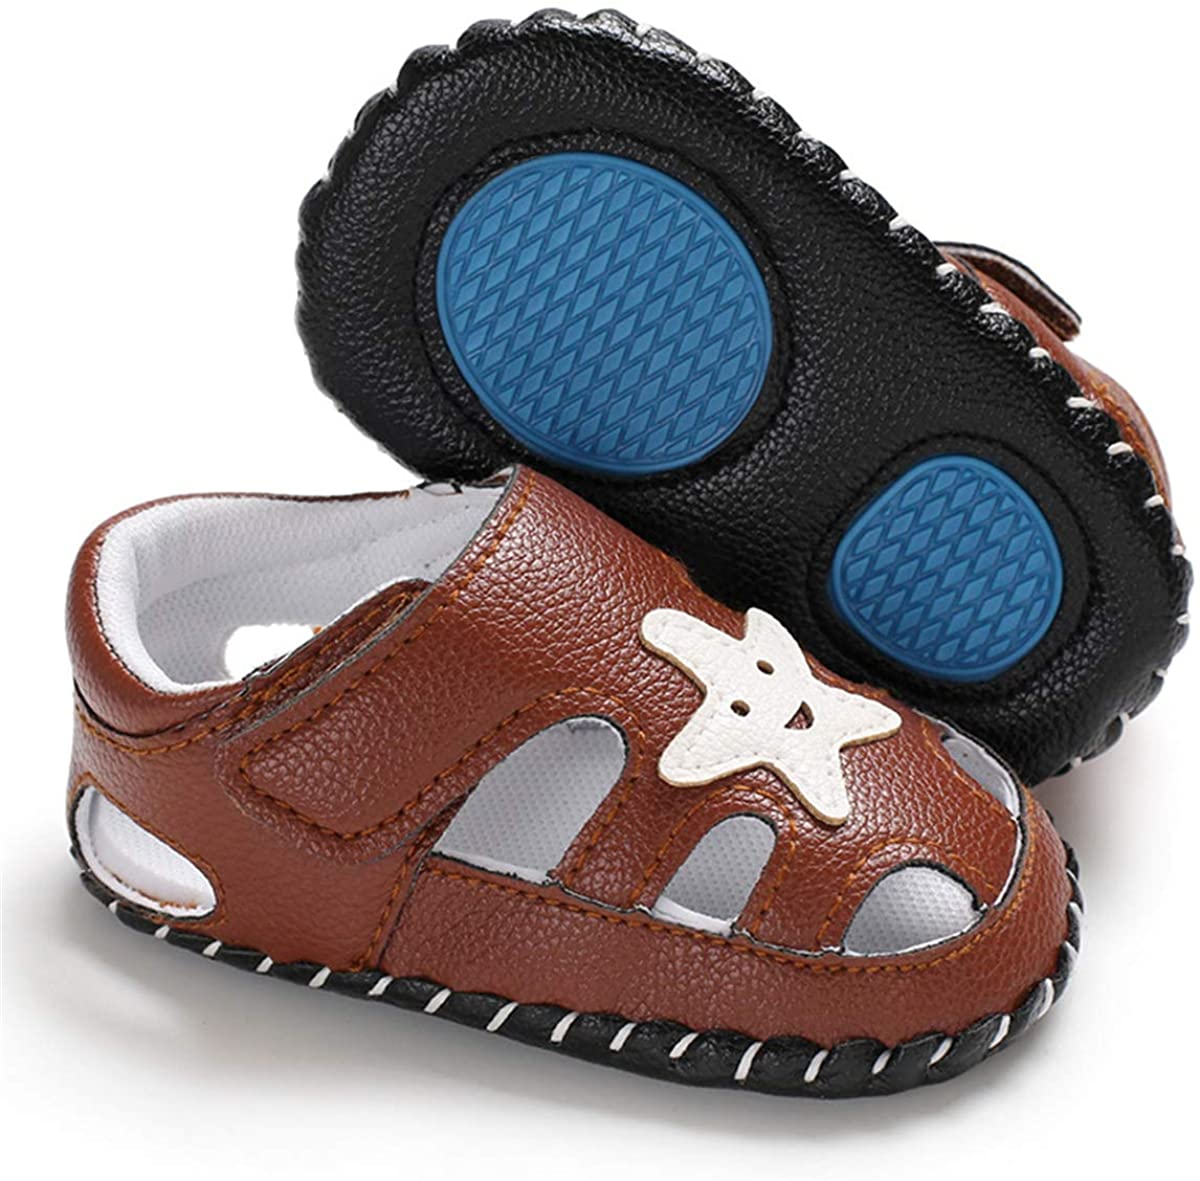 CENCIRILY Baby Boys Girls Sandals Summer Non Slip Rubber Sole Cartoon Leather First Walking Slippers Infant Crib Shoes